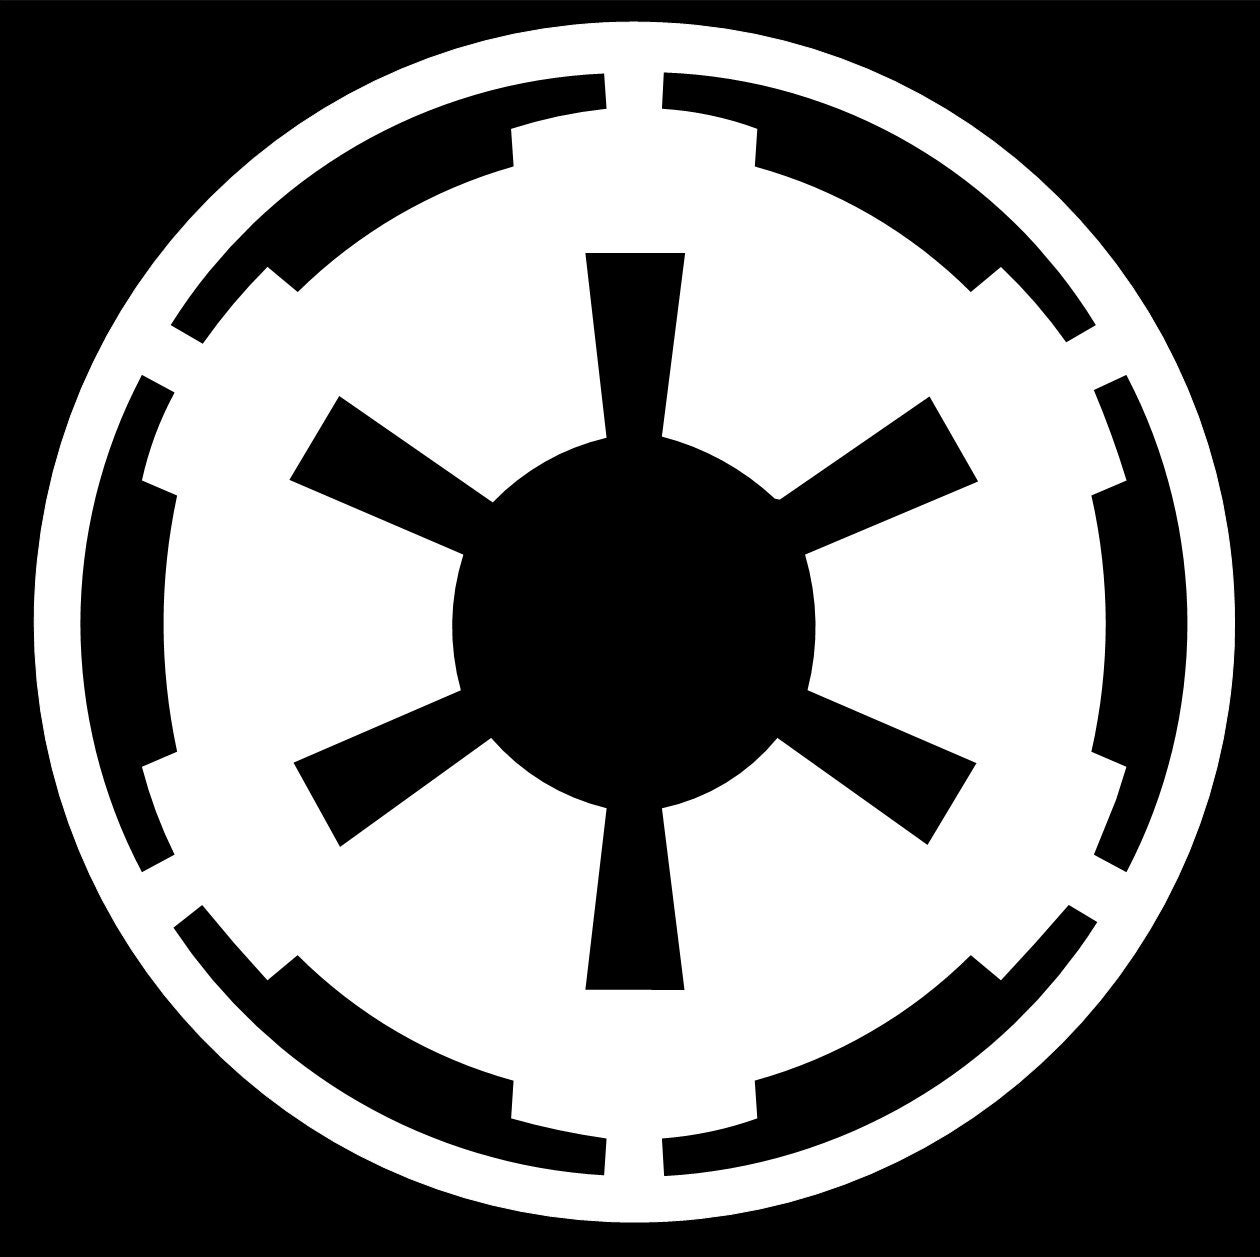 star wars imperial vinyl decal sticker any color. Black Bedroom Furniture Sets. Home Design Ideas